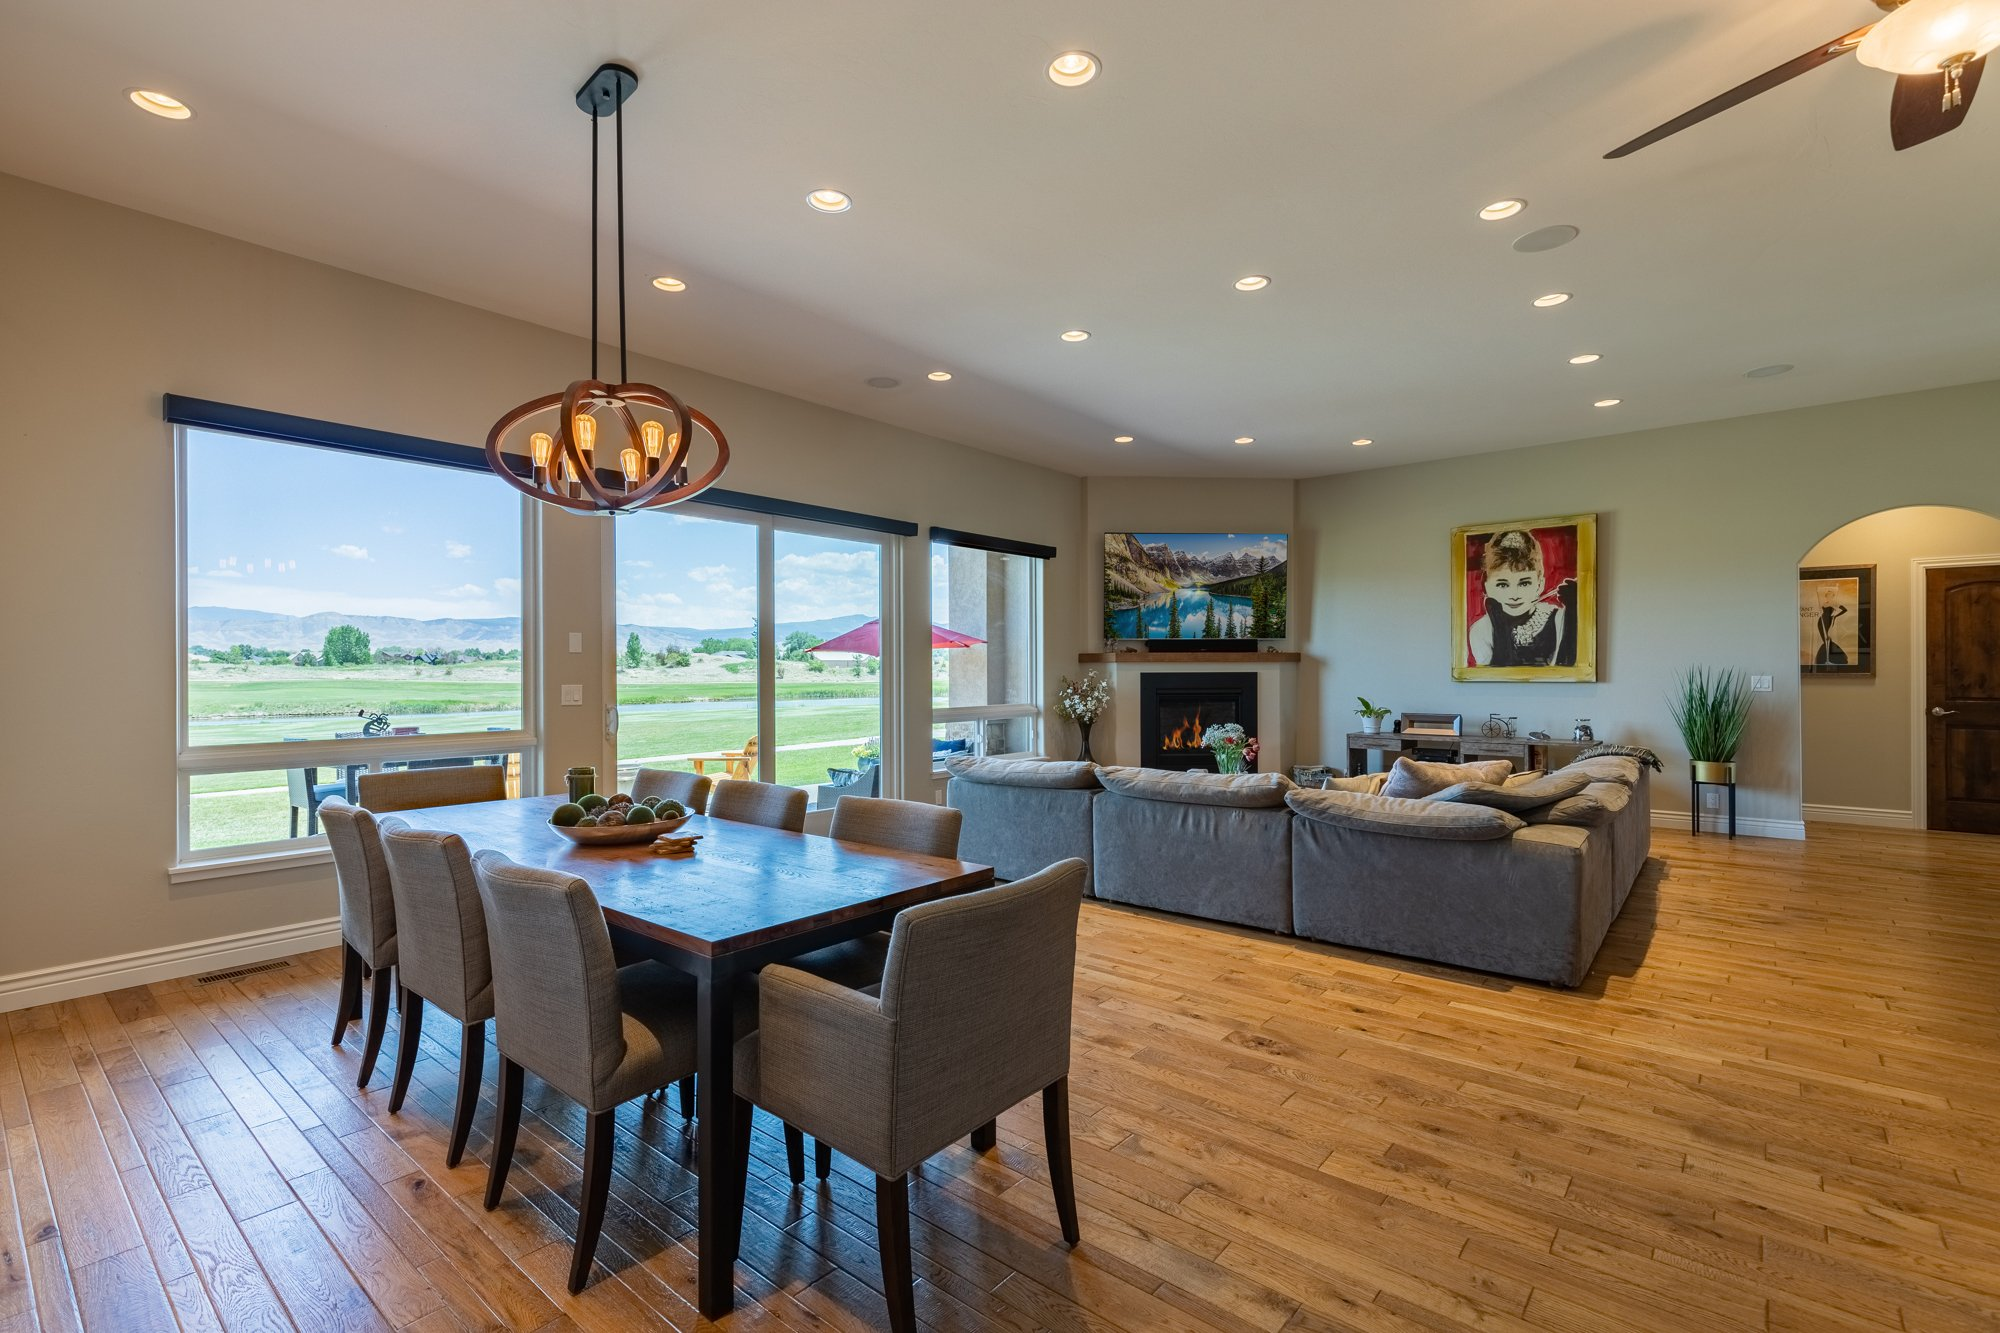 Living Room Dining - 2927 Sleeping Bear Rd Montrose, CO 81401 - Atha Team Real Estate